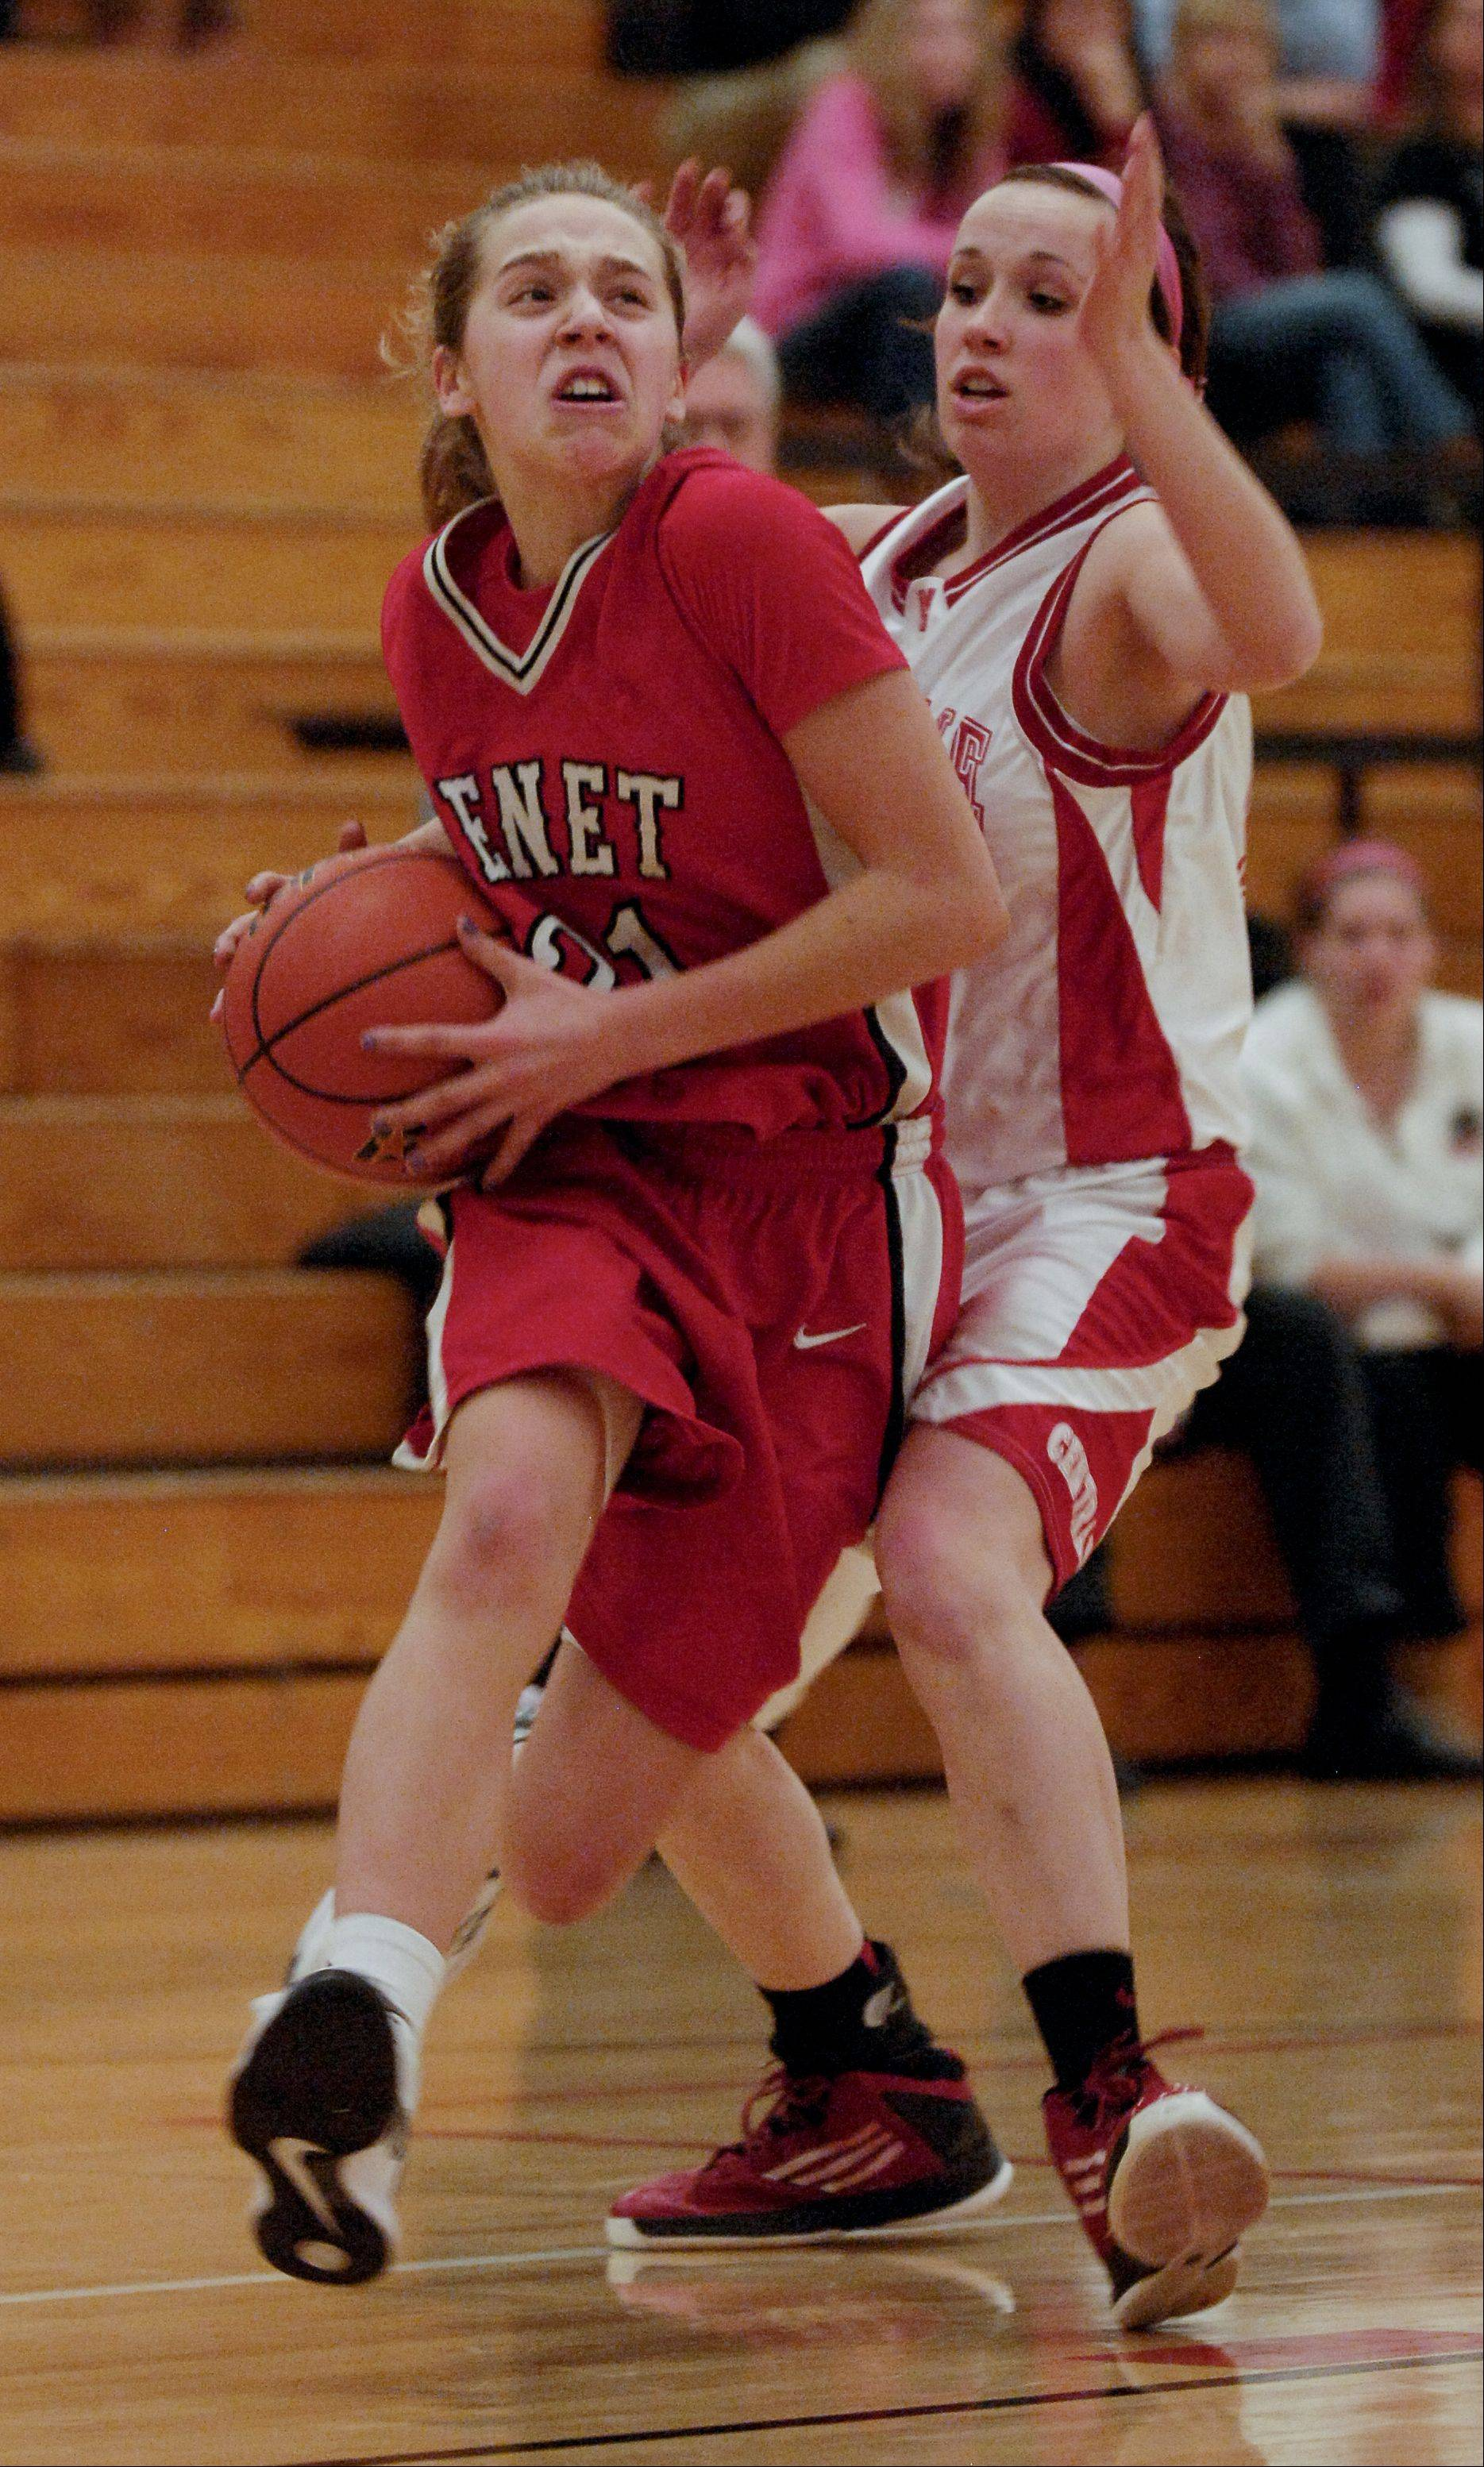 Kathleen Doyle of Benet Academy drives around Emily Kraft of Naperville Central during the girls Class 4A regional final basketball game, Thursday in Lisle.